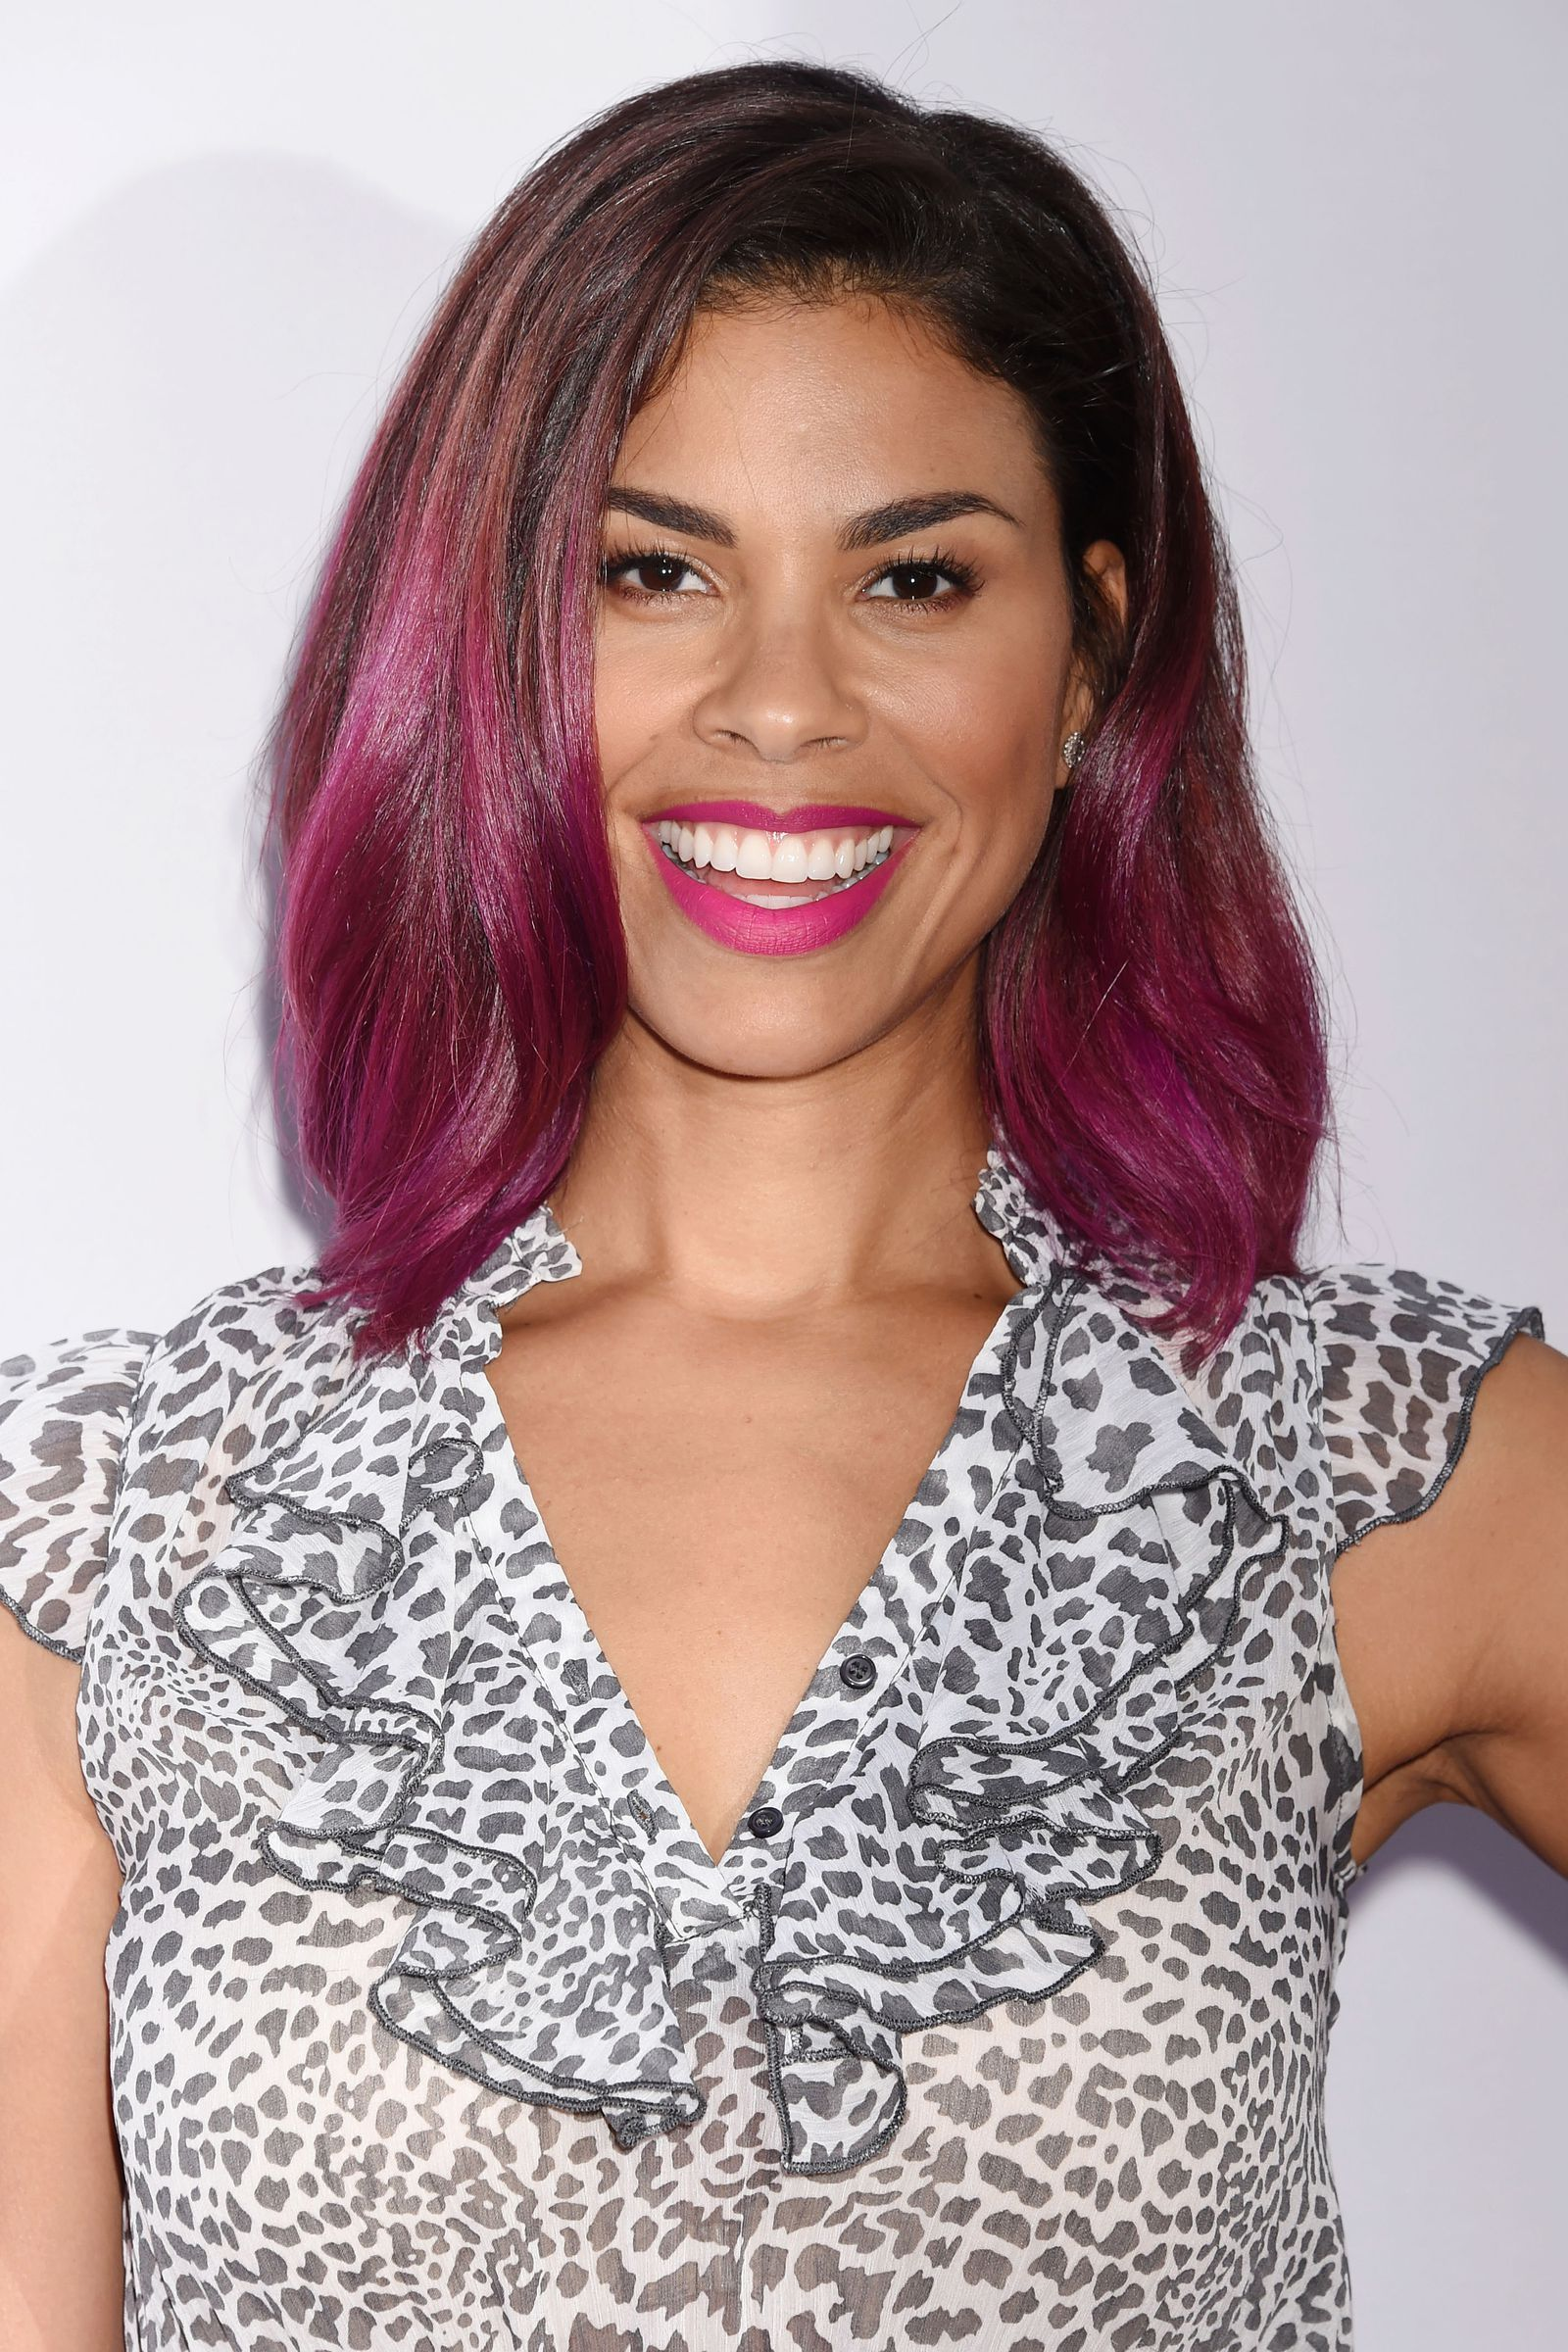 hair color trends you need to know for short hairstyle